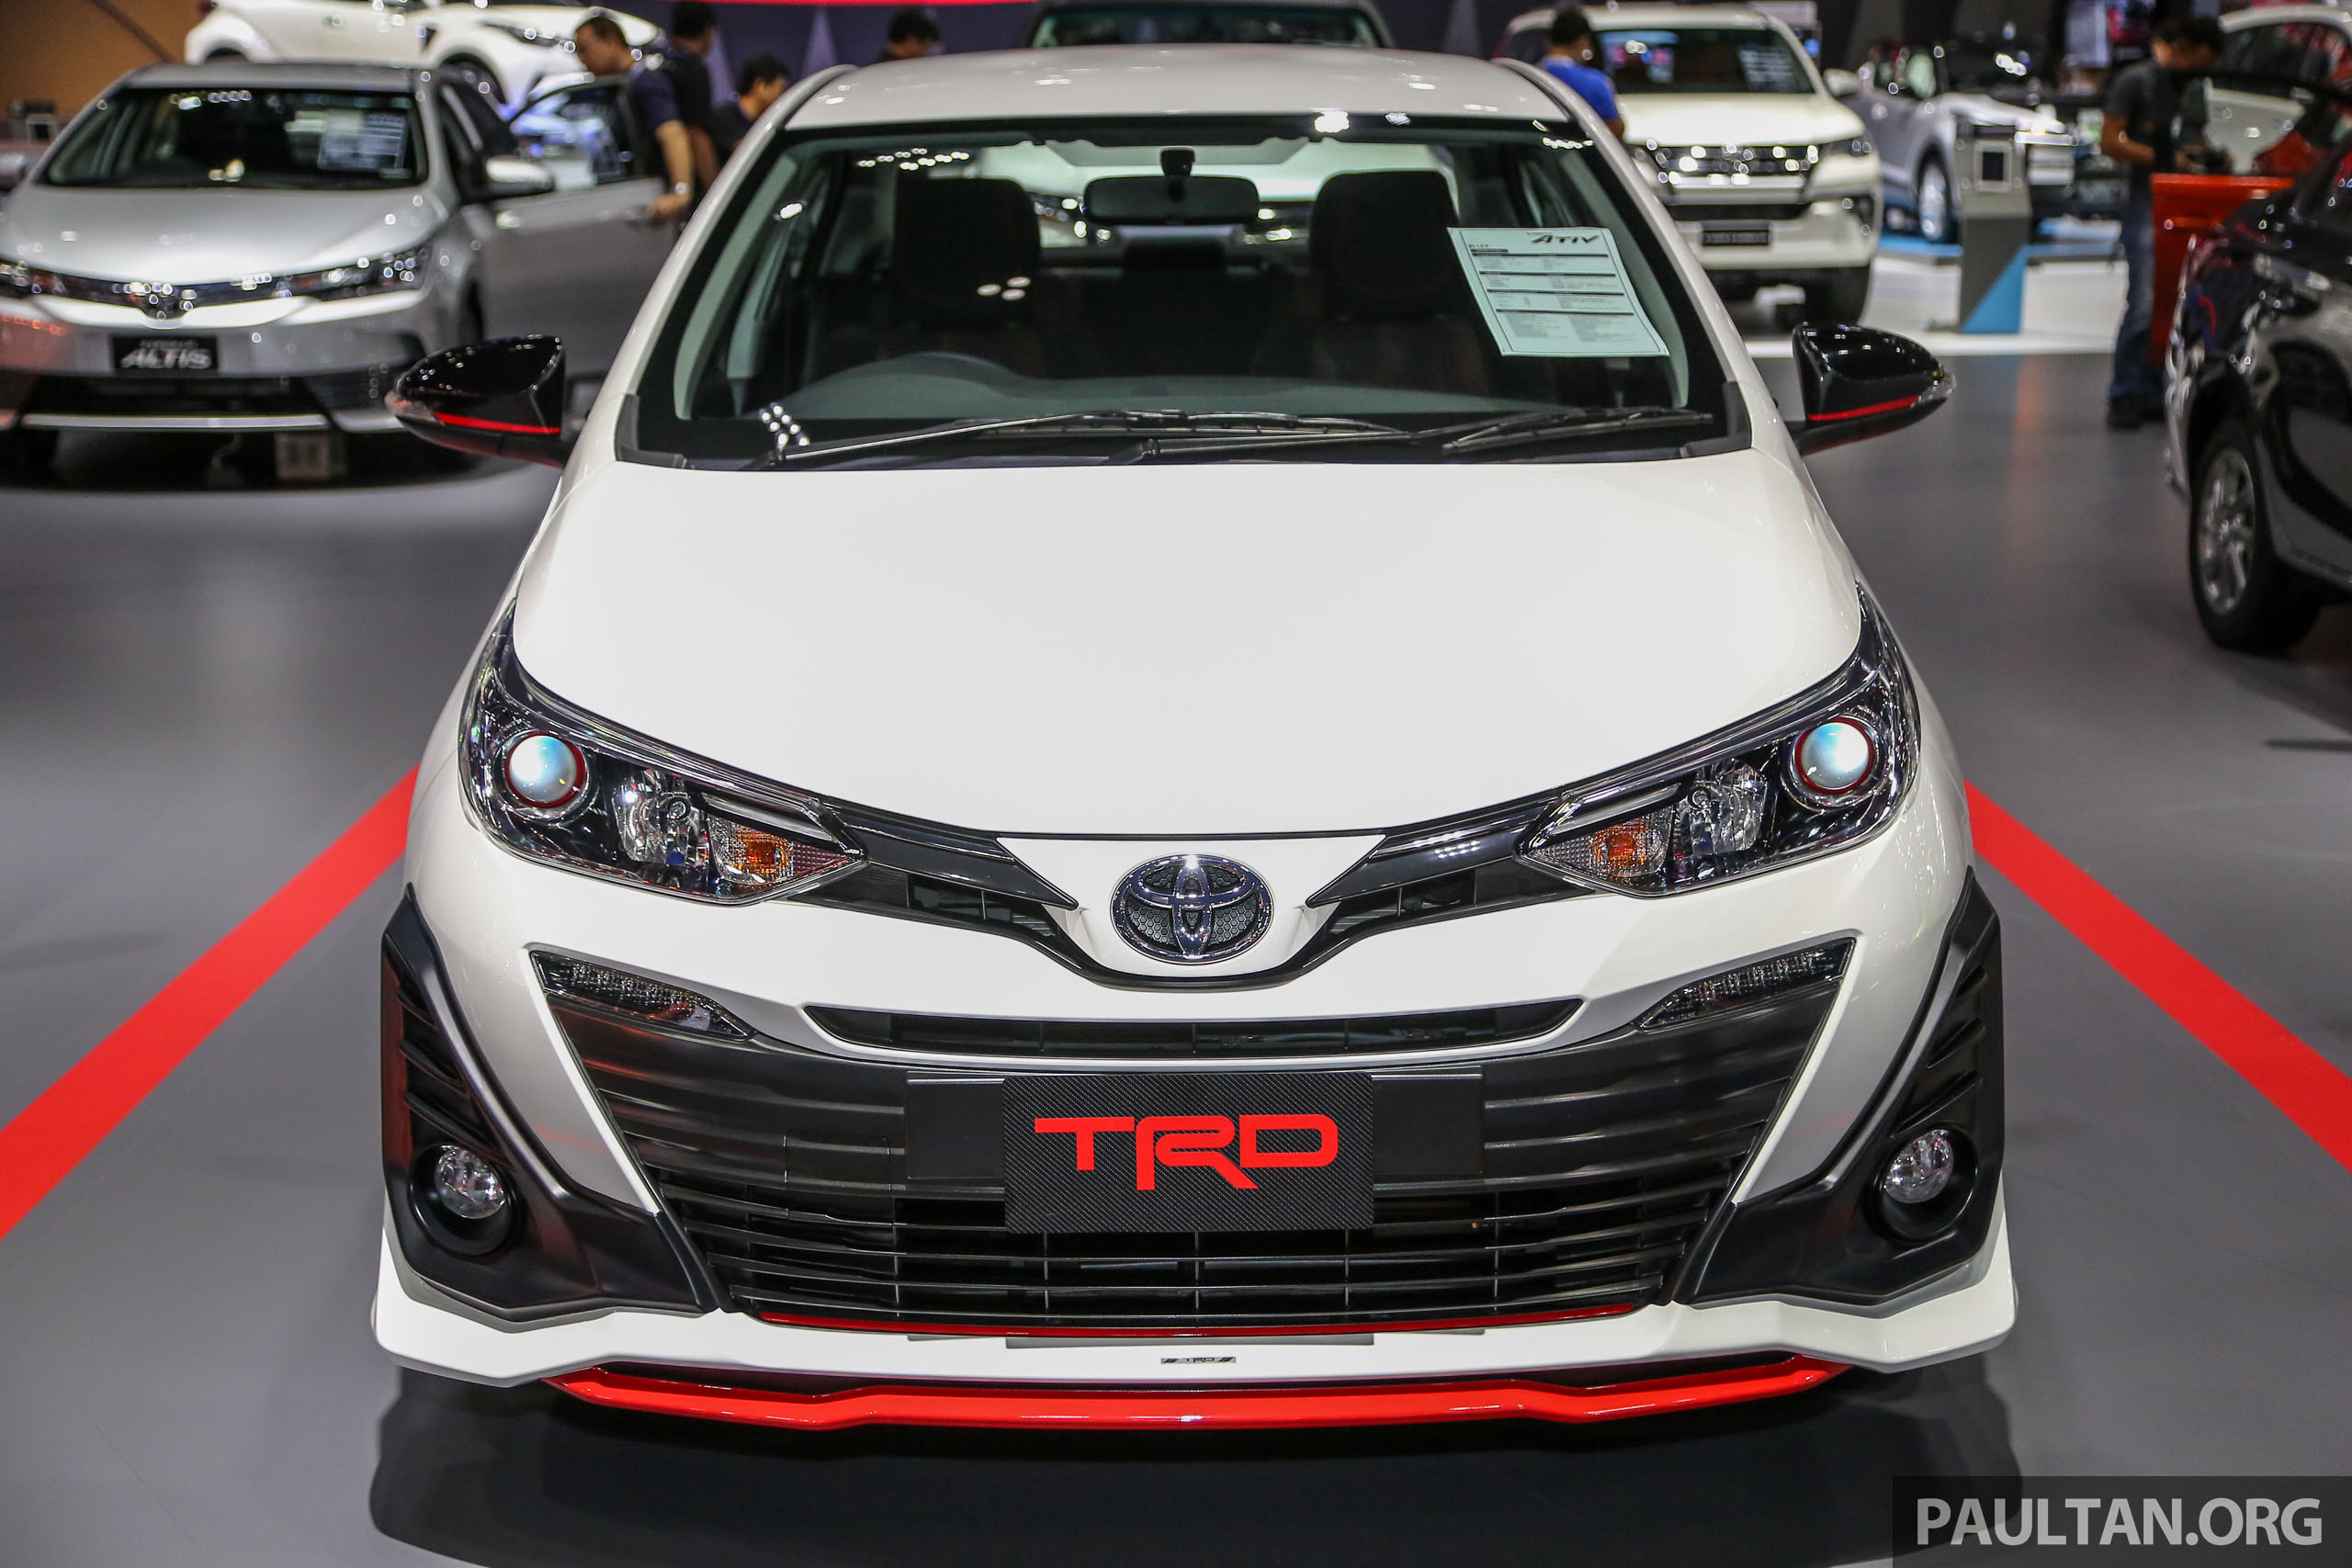 toyota yaris trd spoiler all new camry 2019 interior bangkok 2018 ativ future vios